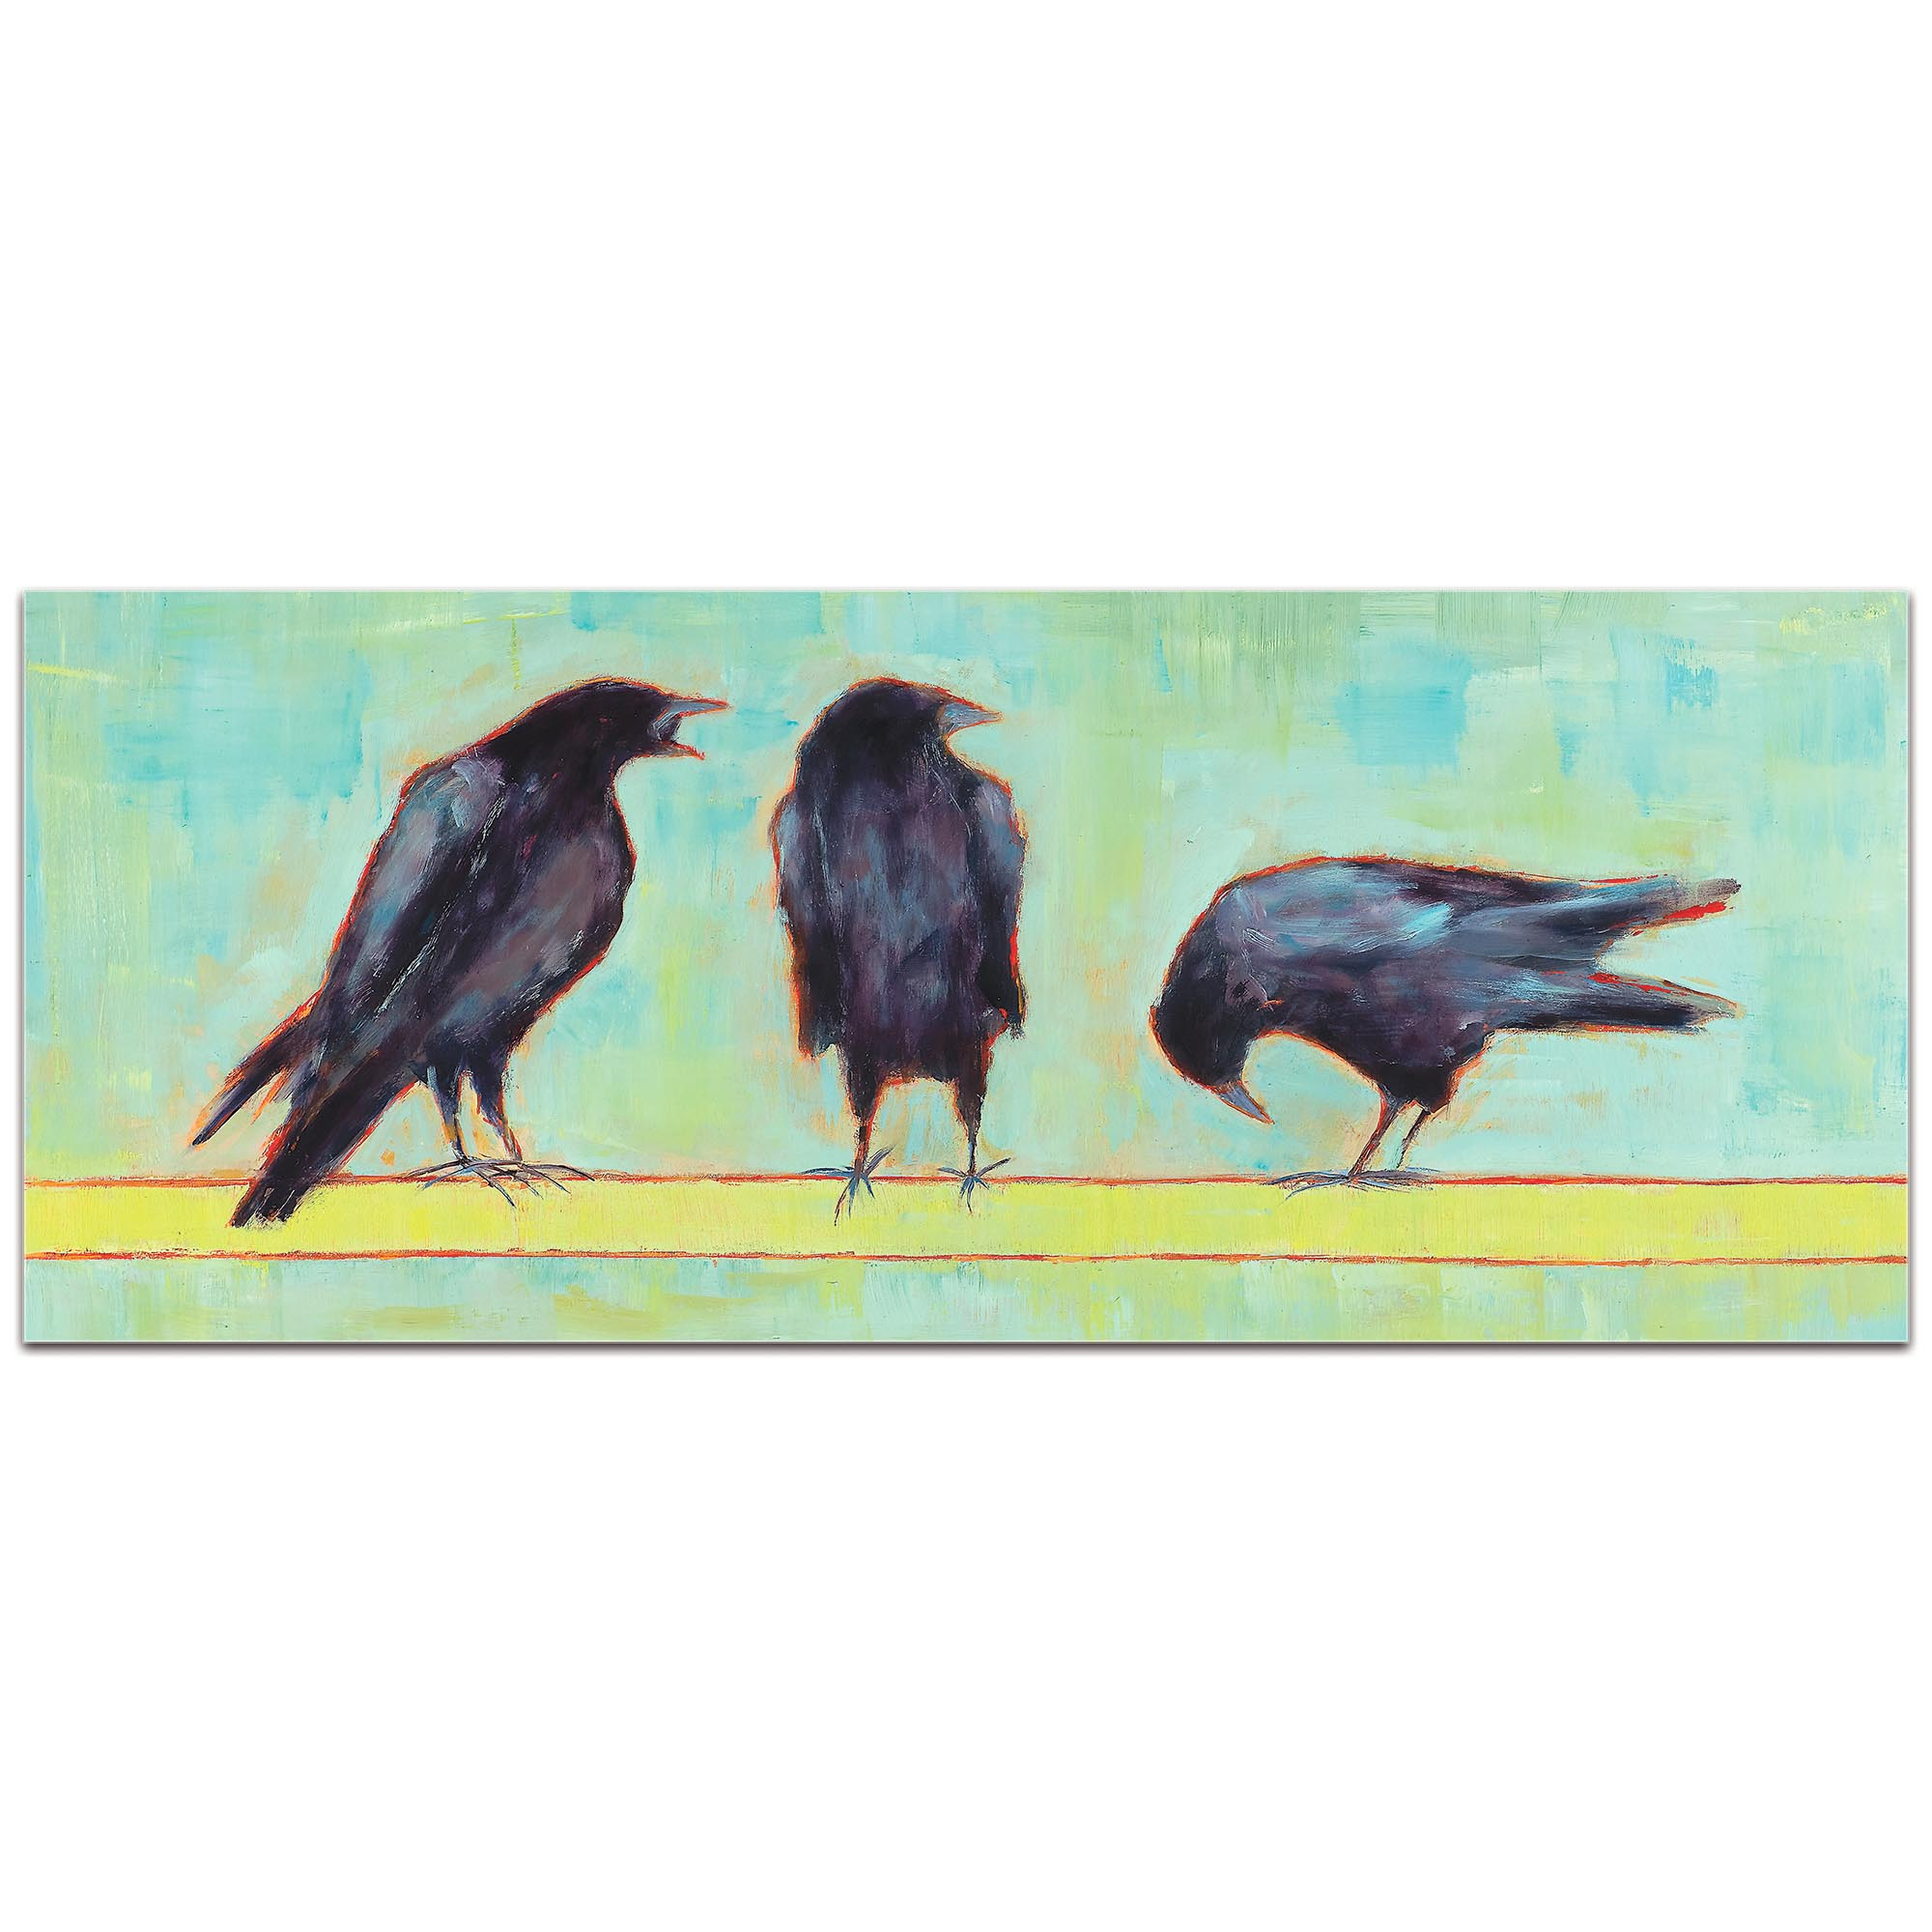 Contemporary Wall Art 'Crow Bar 1 v2' - Urban Birds Decor on Metal or Plexiglass - Image 2